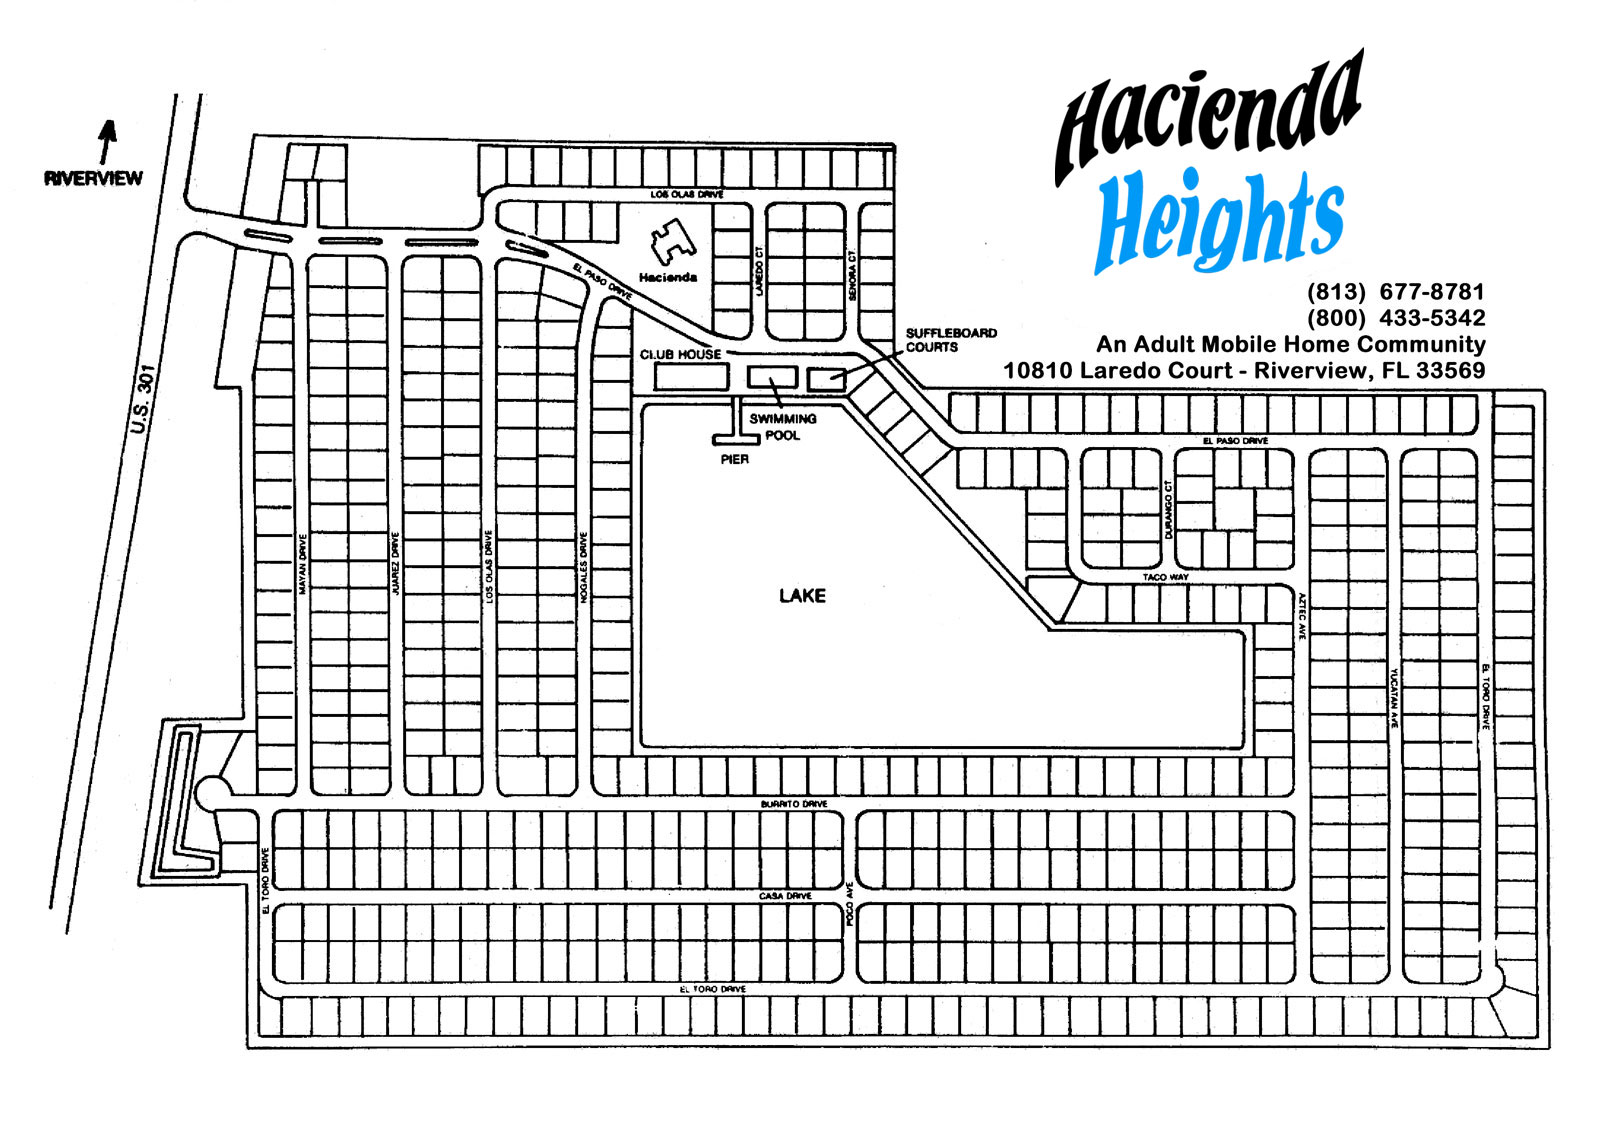 Hacienda Heights Property Site Plan